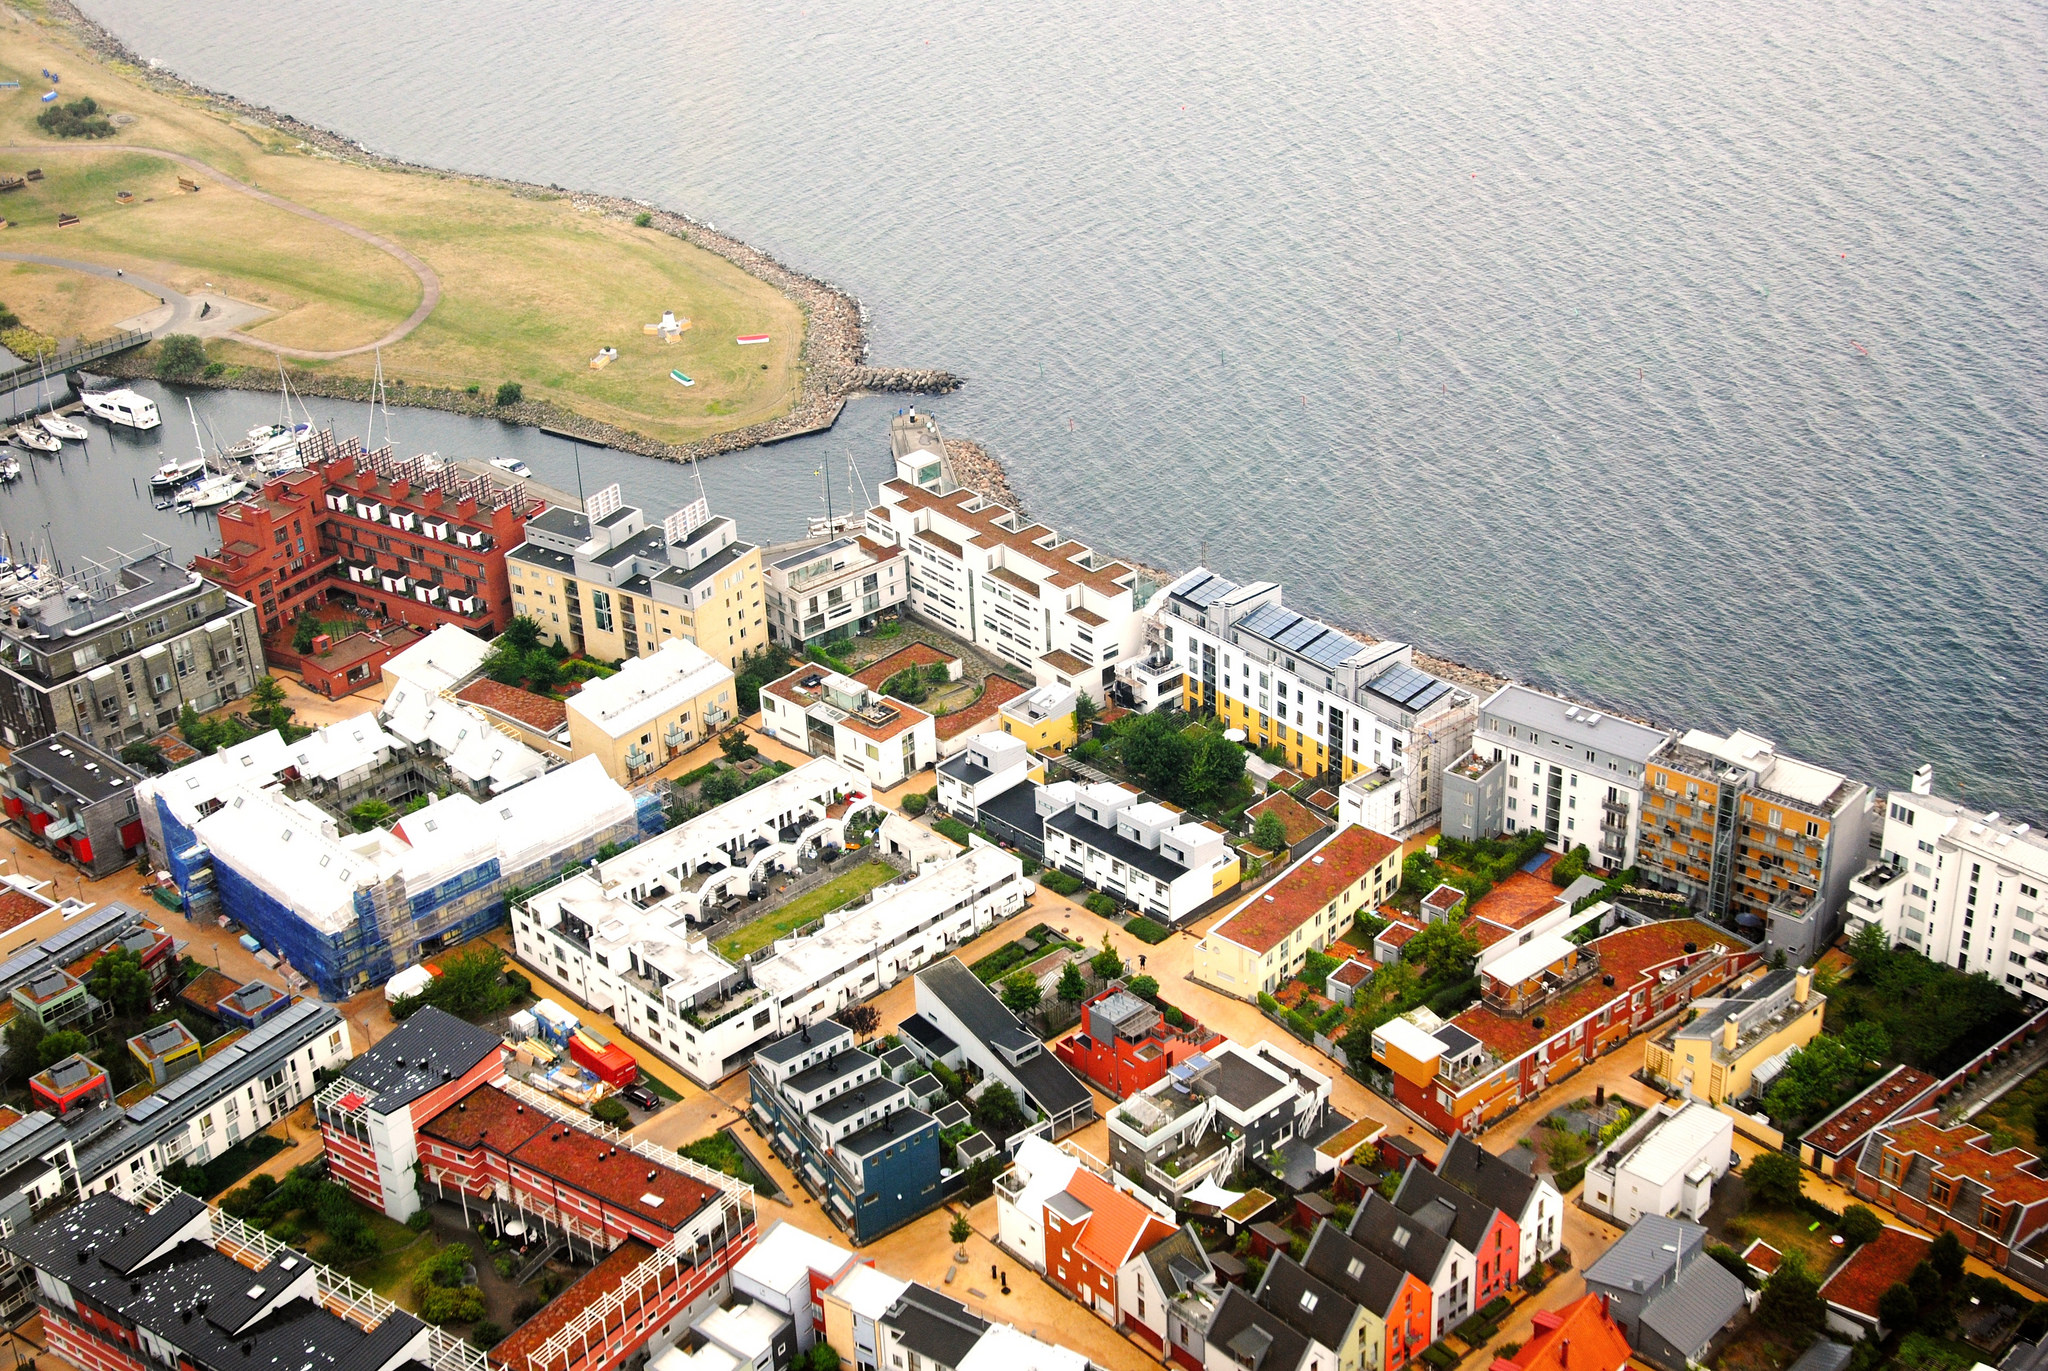 Västra Hamnen is the first carbon-neutral district in the world, meaning that it is completely powered by renewable energy. (Photo by Maria Eklind/Flickr User)